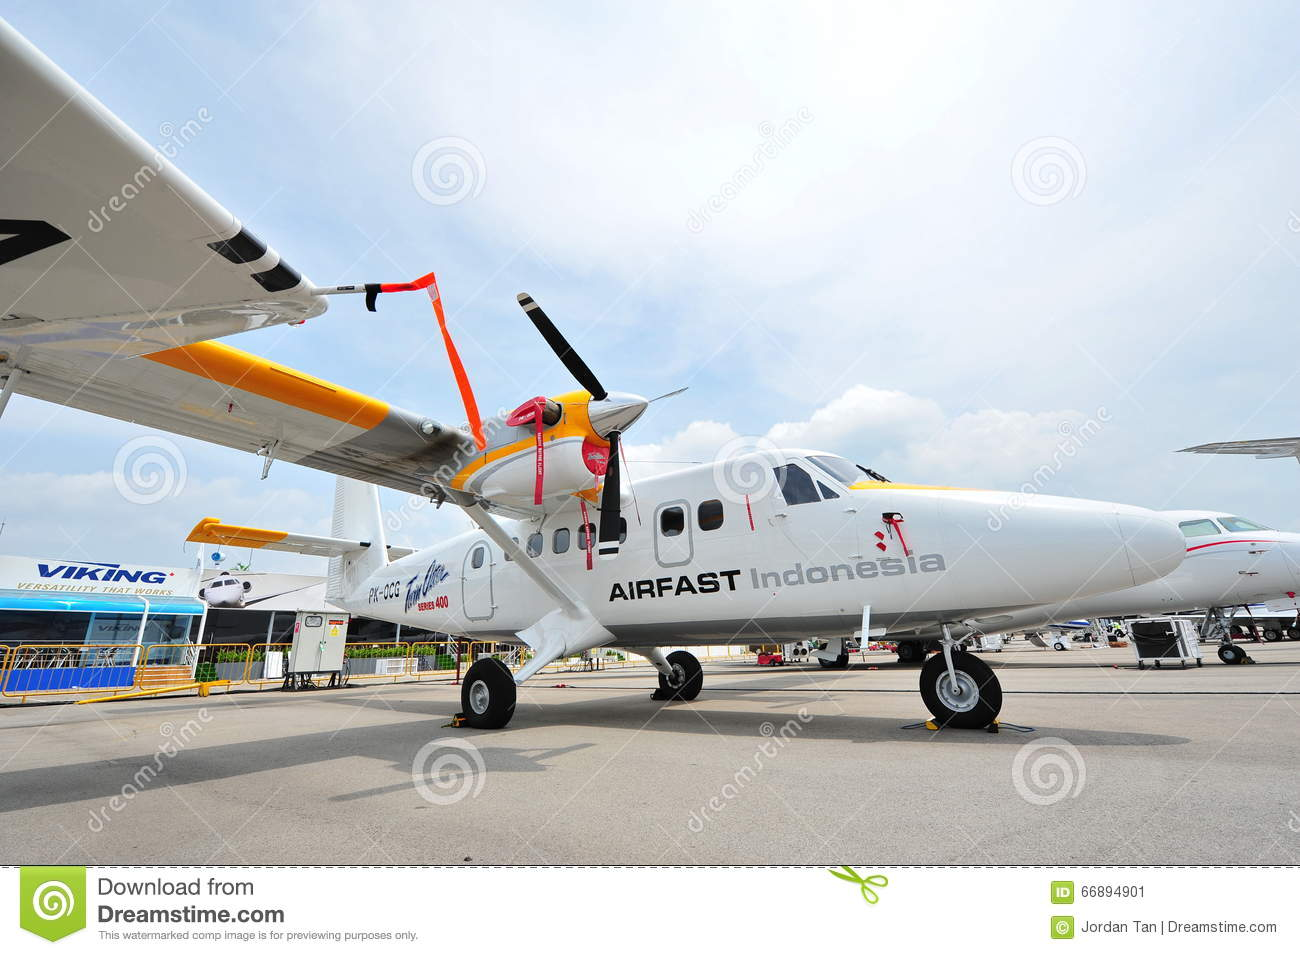 Airfast Indonesia Viking's Twin Otter Series 400 Aircraft On.